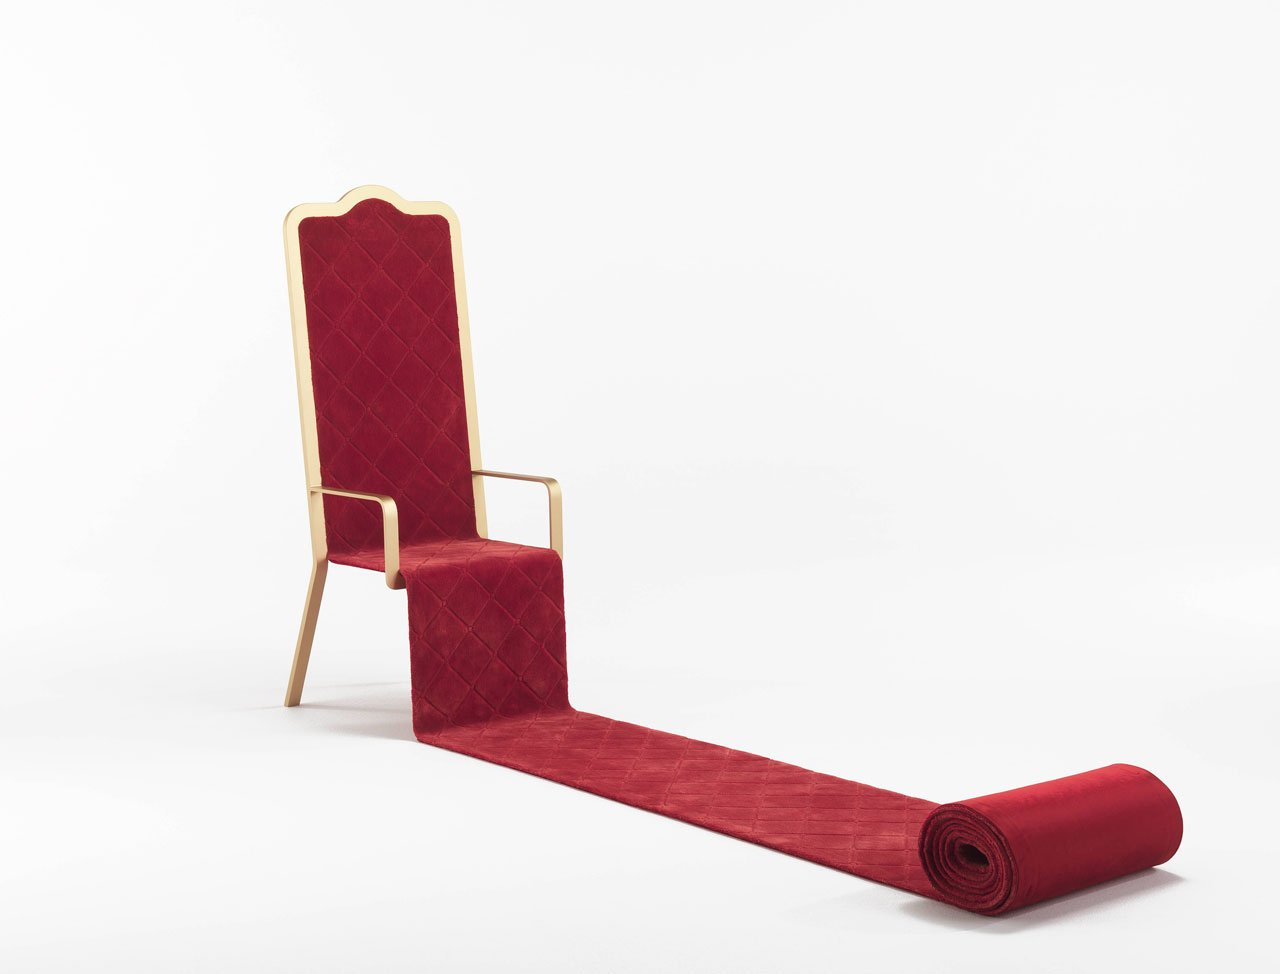 "OSFORTH throne by Emanuele Magini for for JCP Universe.Materials: hand-woven red carpet in Bamboo Silk on iron structure in matte ""tailor made"" gold finish.Dimensions (H x W x D): 150cm x 59cm x 62-500cm.Photo by Silvio Macchi © JCP Universe."